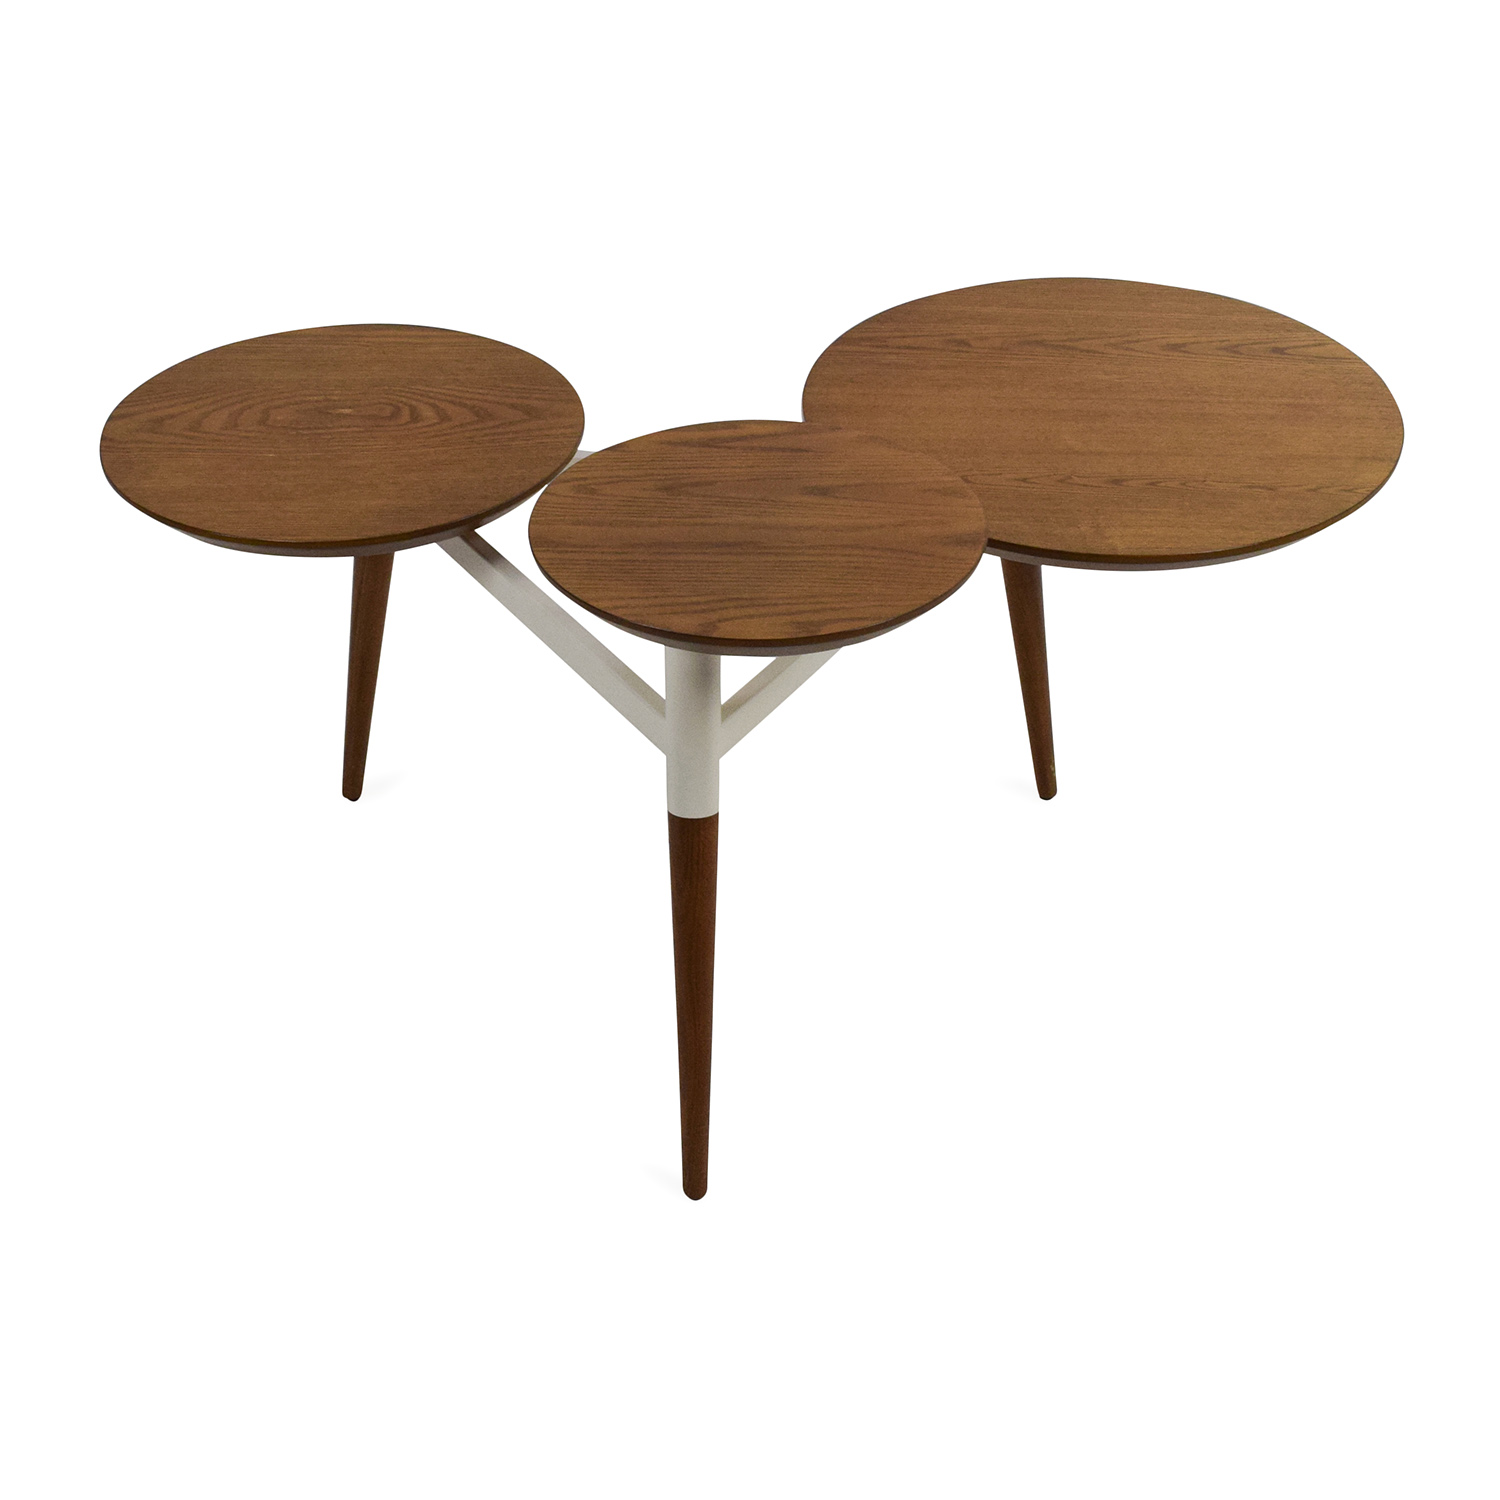 56% OFF West Elm West Elm Clover Coffee Table Tables